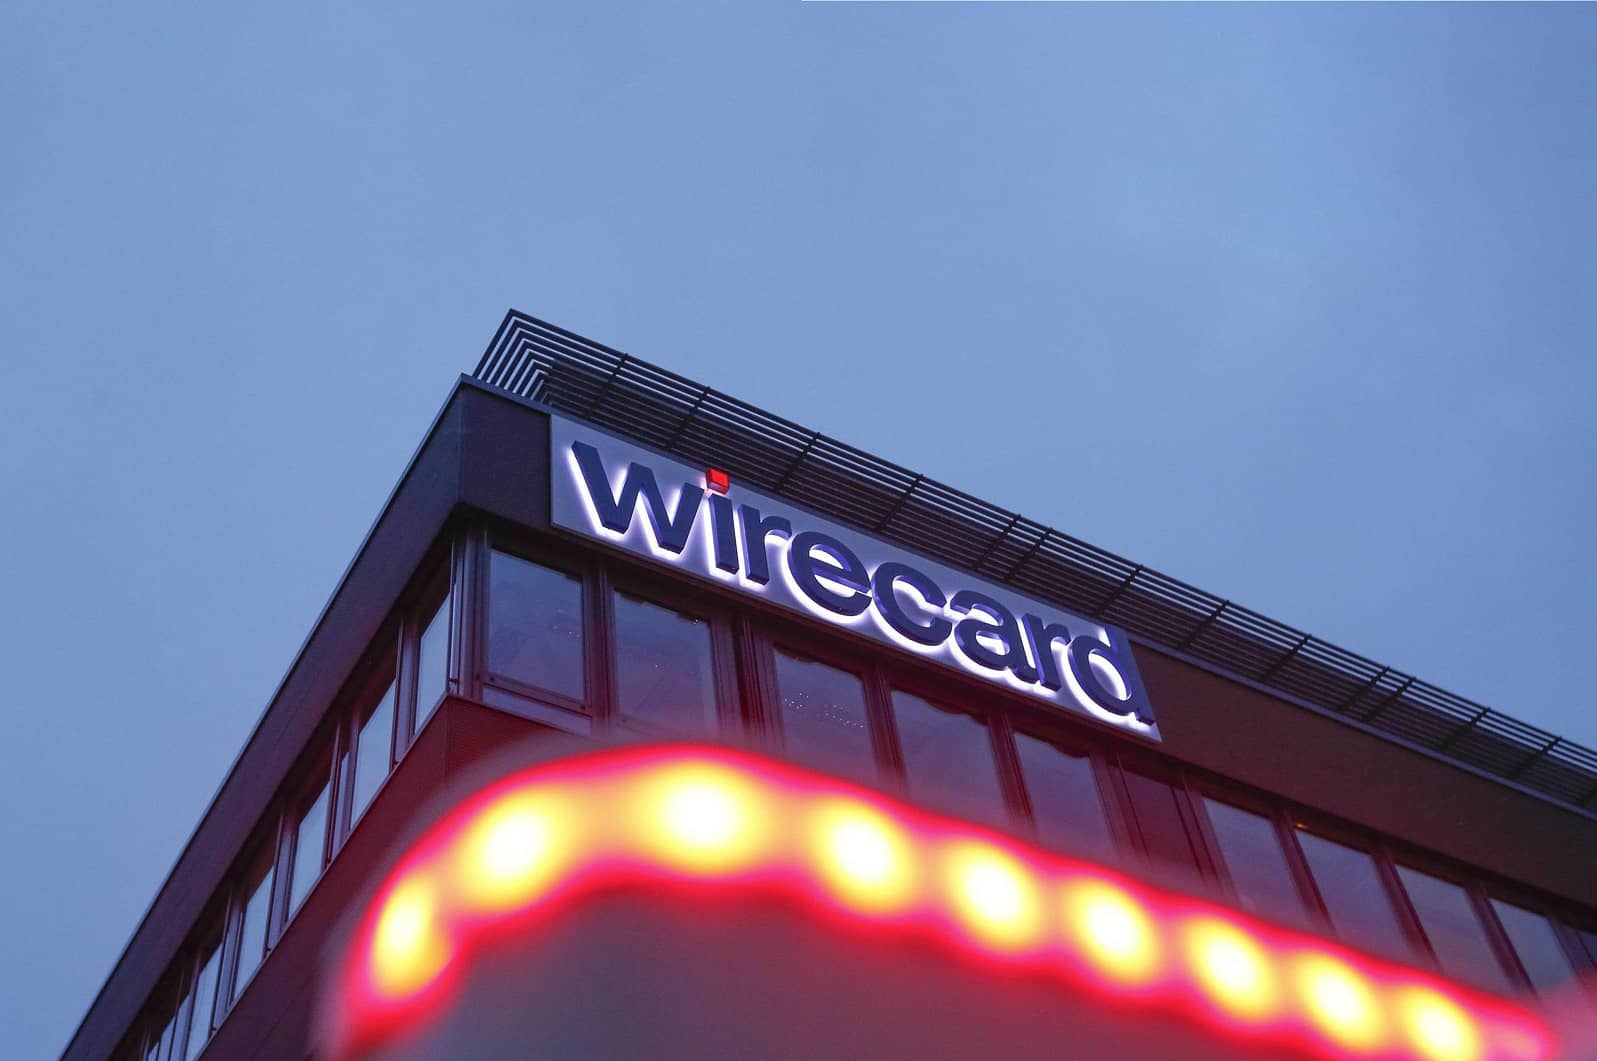 WIRECARD SCANDAL MISSING BILLIONS LIKELY DON'T EXIST